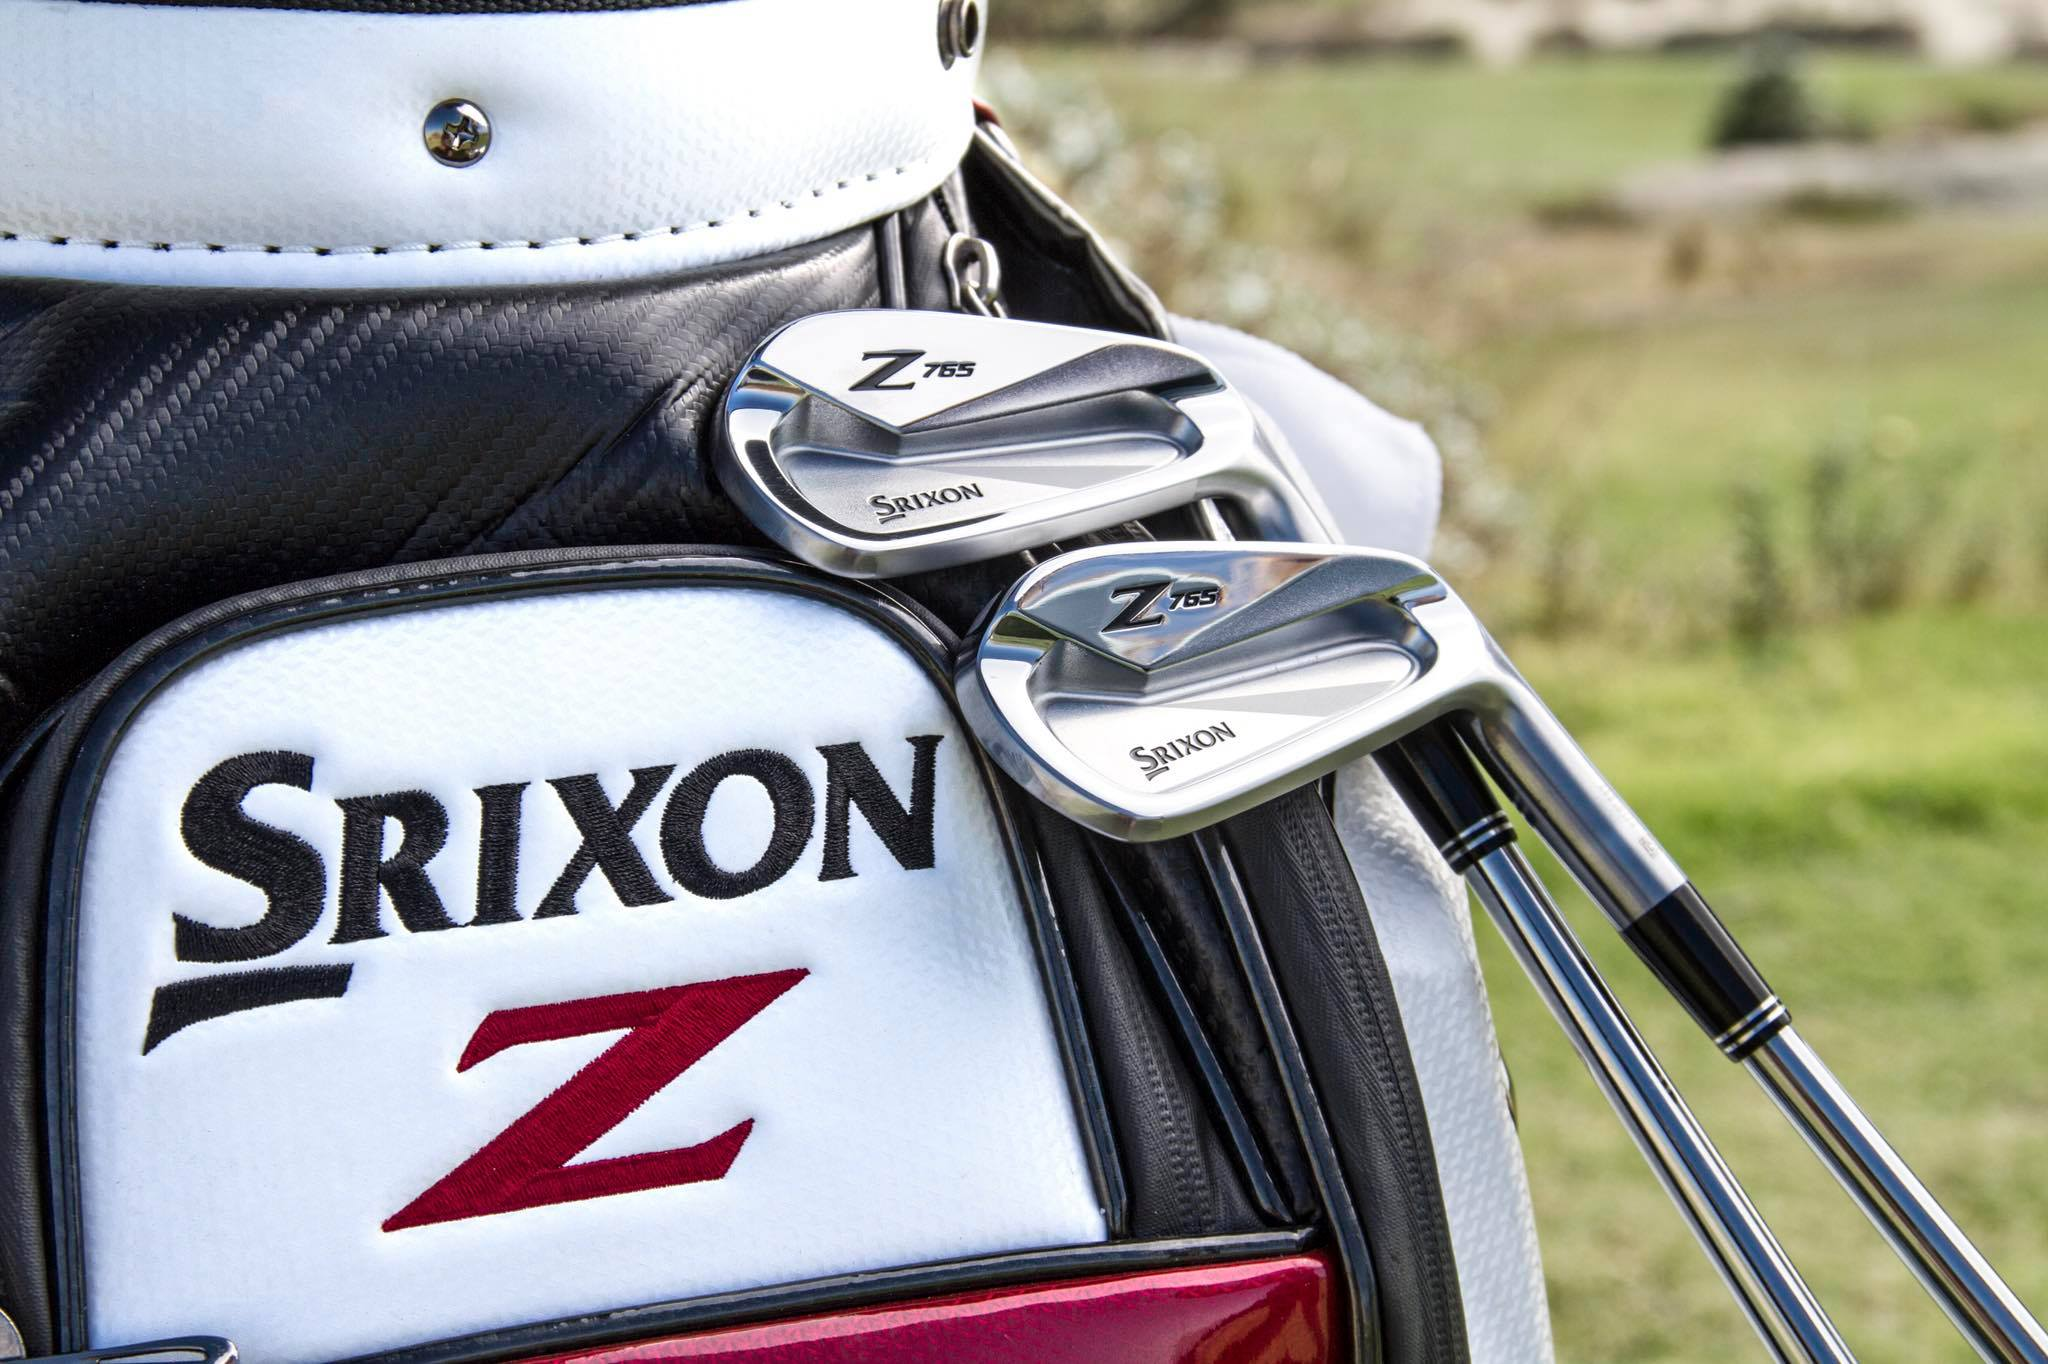 Srixon Golf Demo Day at THE LINKS AT DARDENNE